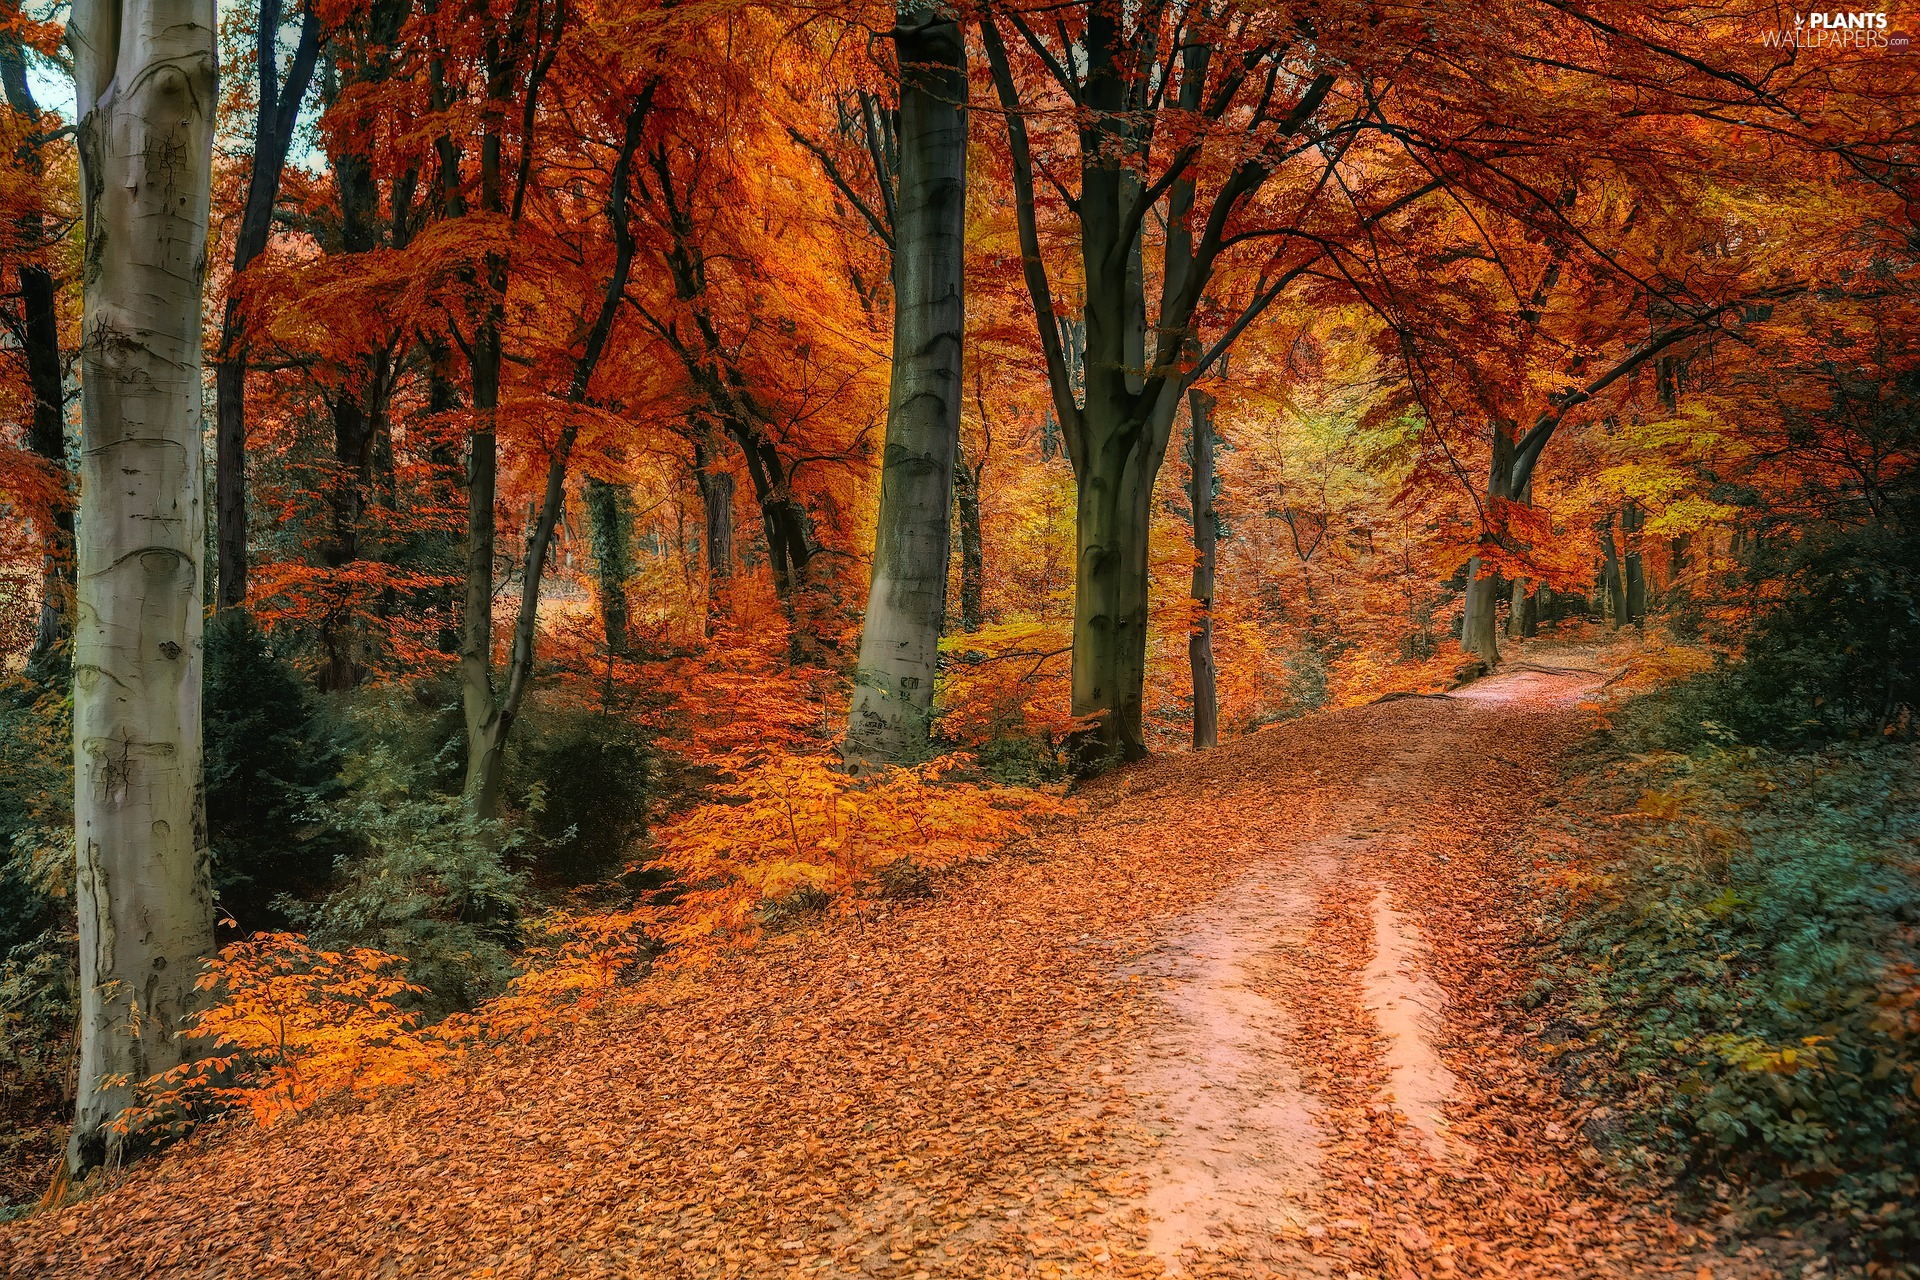 fallen, Leaf, forest, color, viewes, Way, autumn, trees